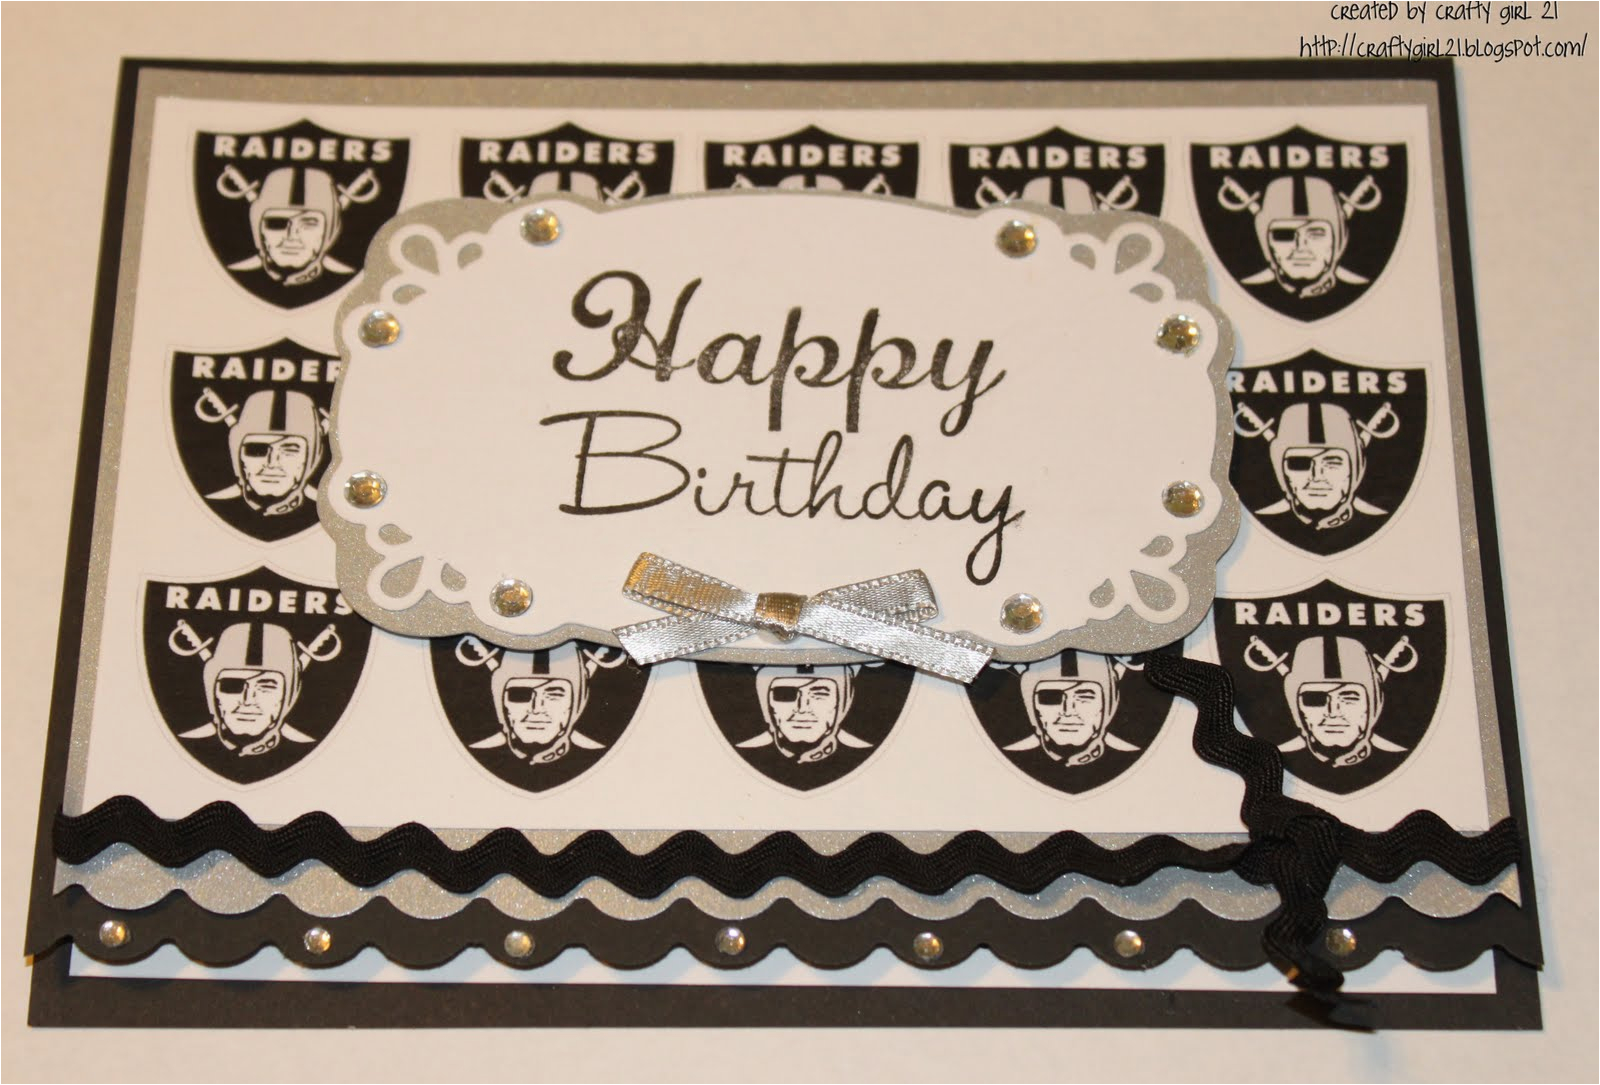 raiders birthday card